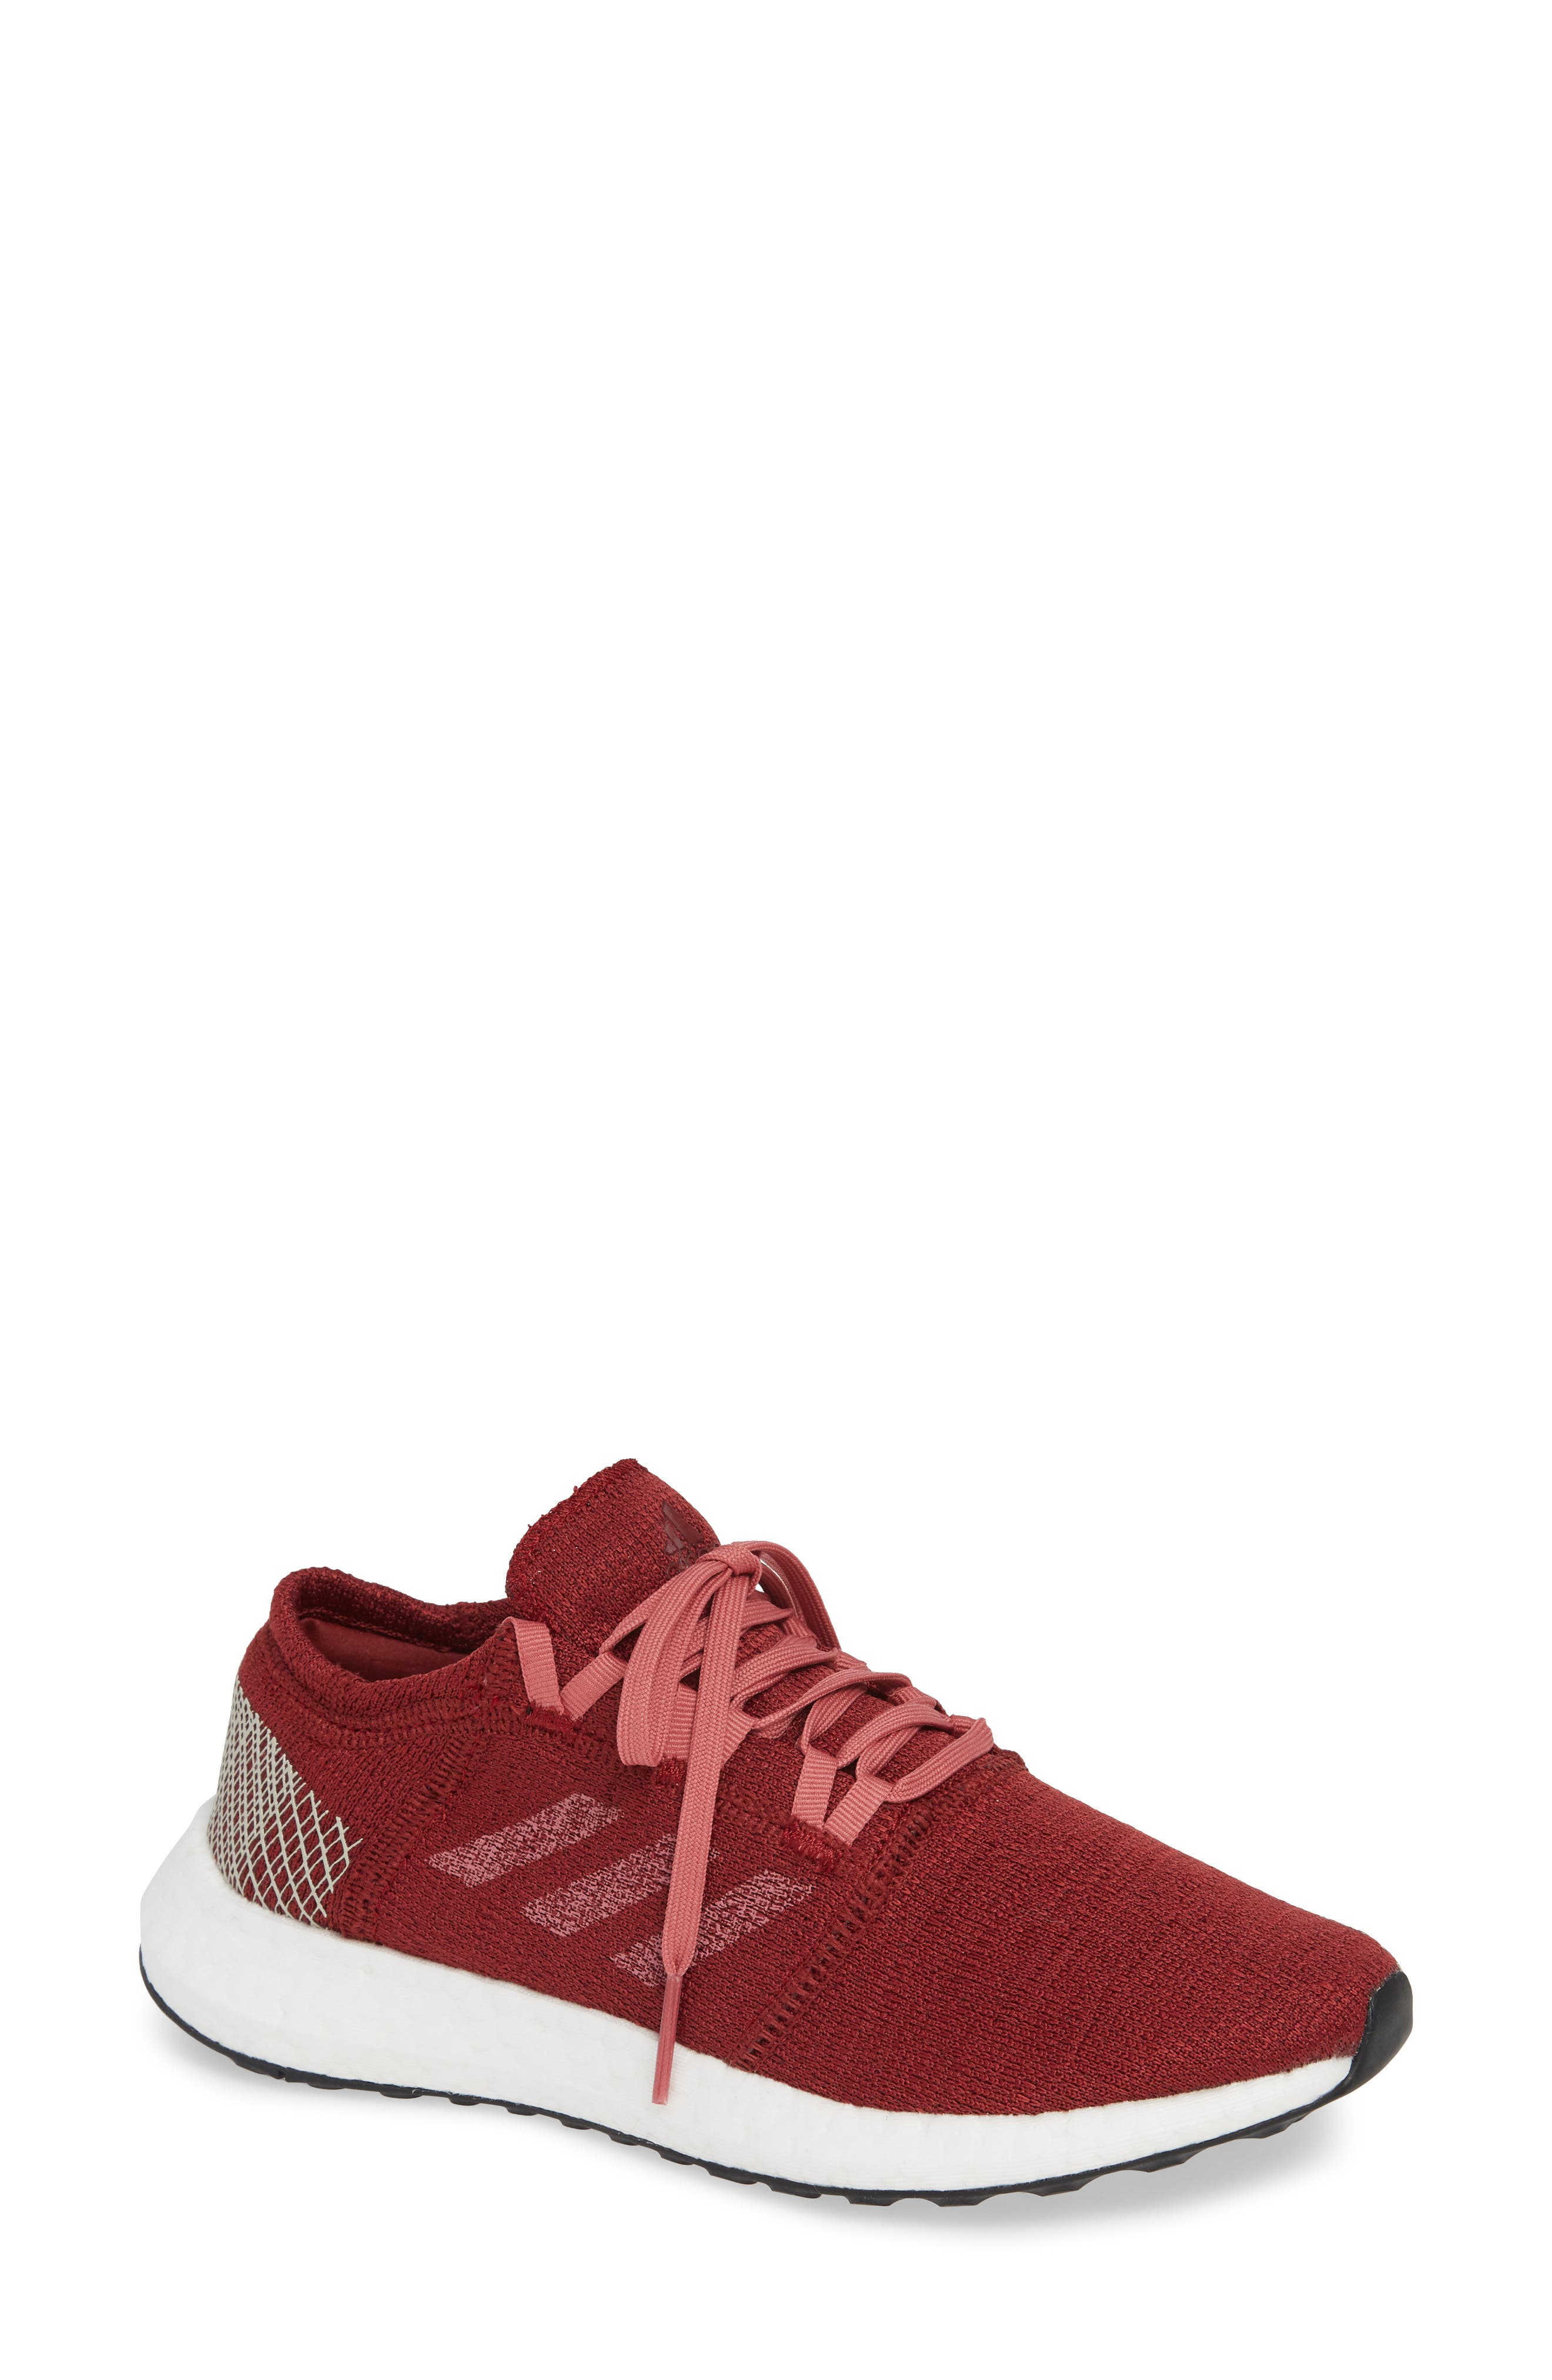 PureBoost X Element Knit Running Shoe,                         Main,                         color, NOBLE MAROON/ MAROON/ BROWN